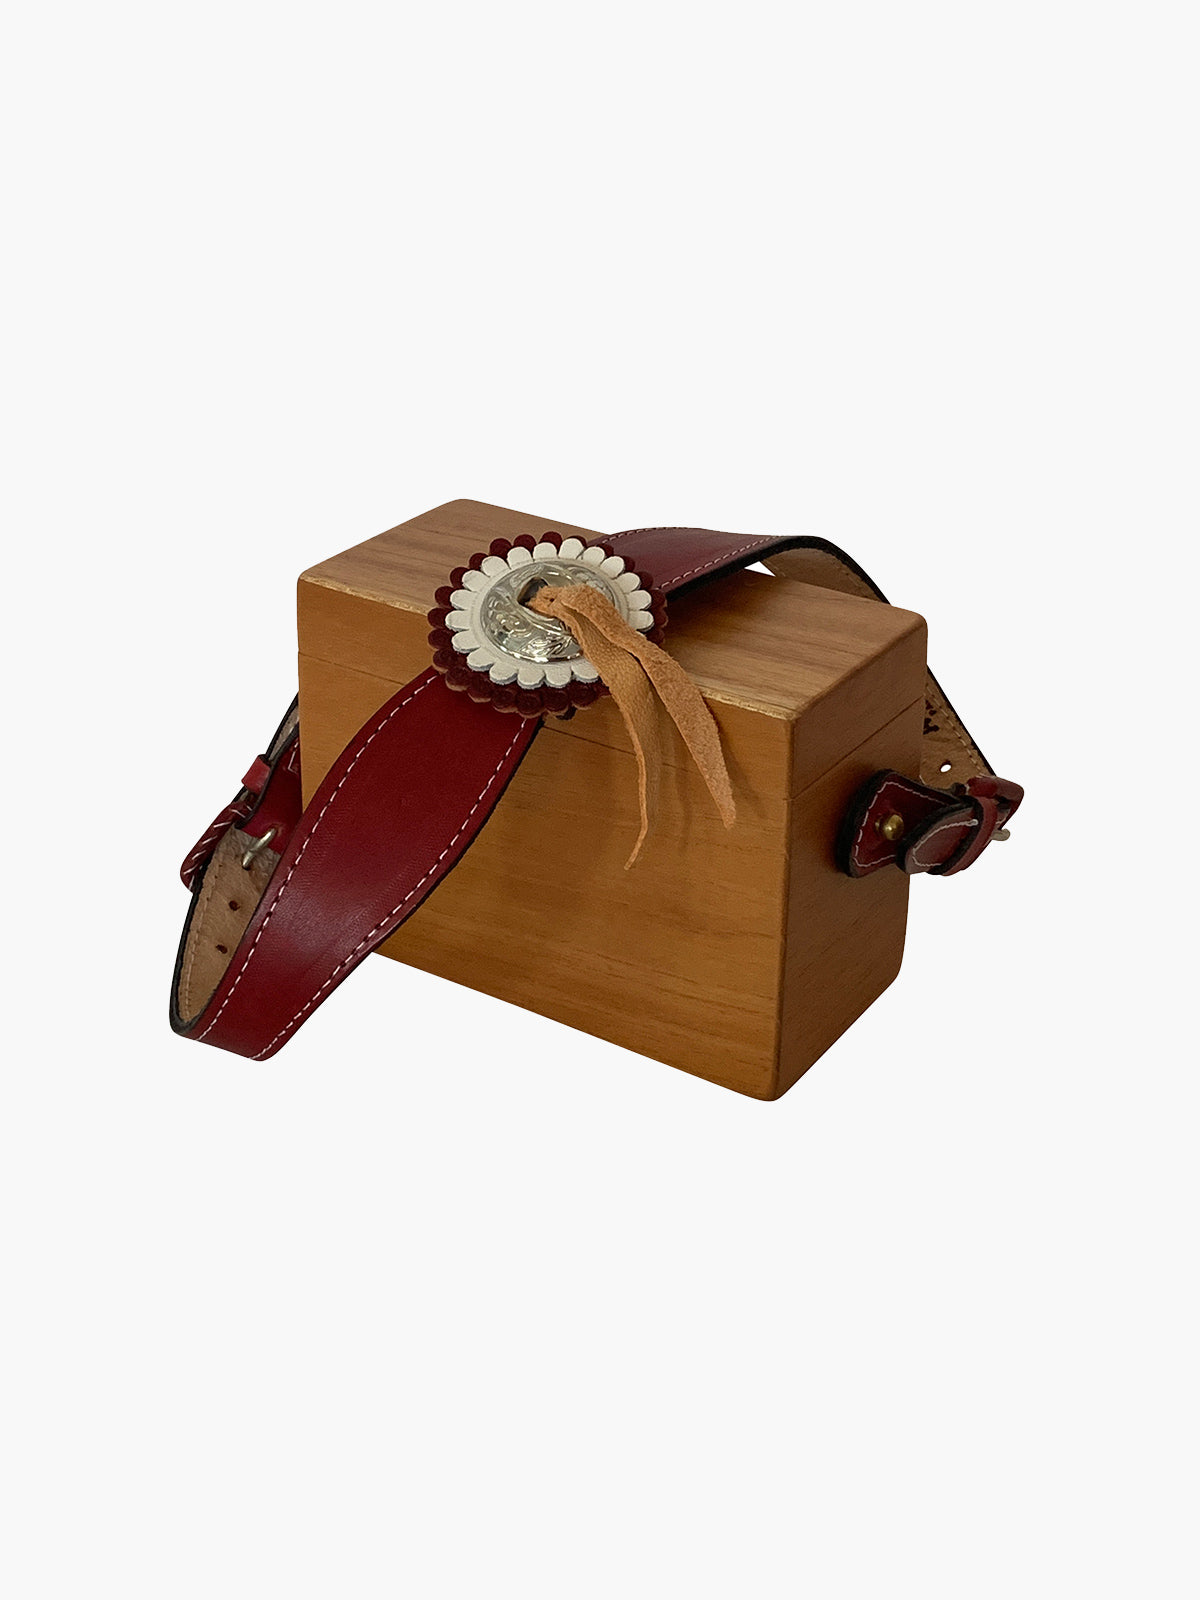 Ladrillo Box Bag | Cedar Wood Ladrillo Box Bag | Cedar Wood